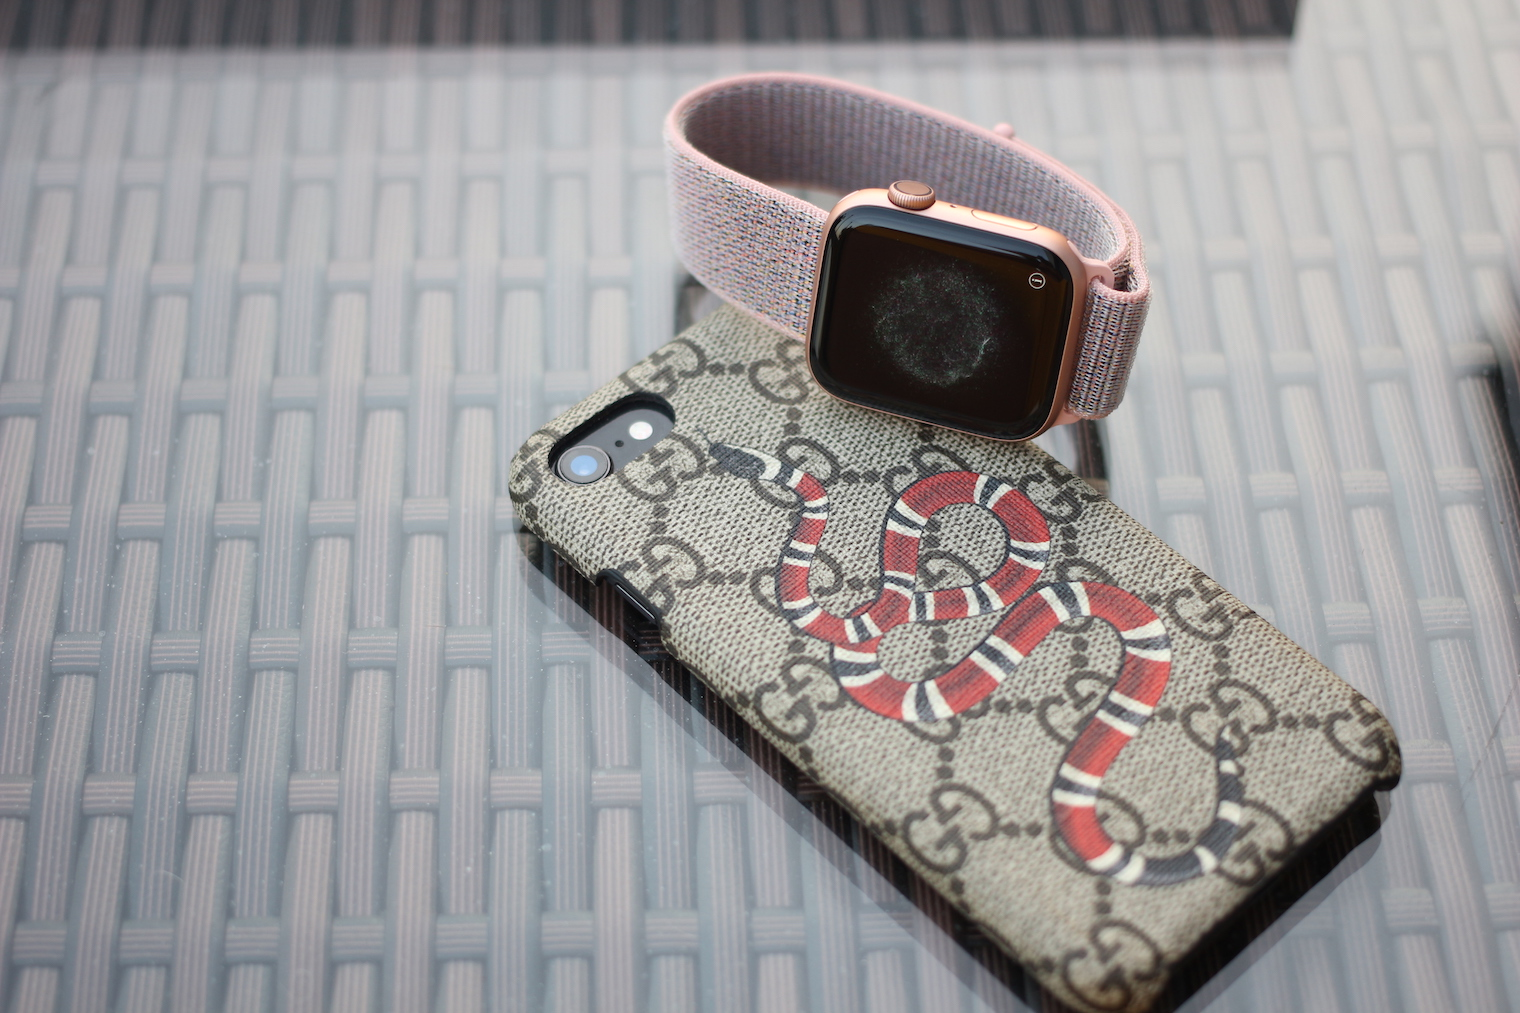 Gucci iphone case and apple watch